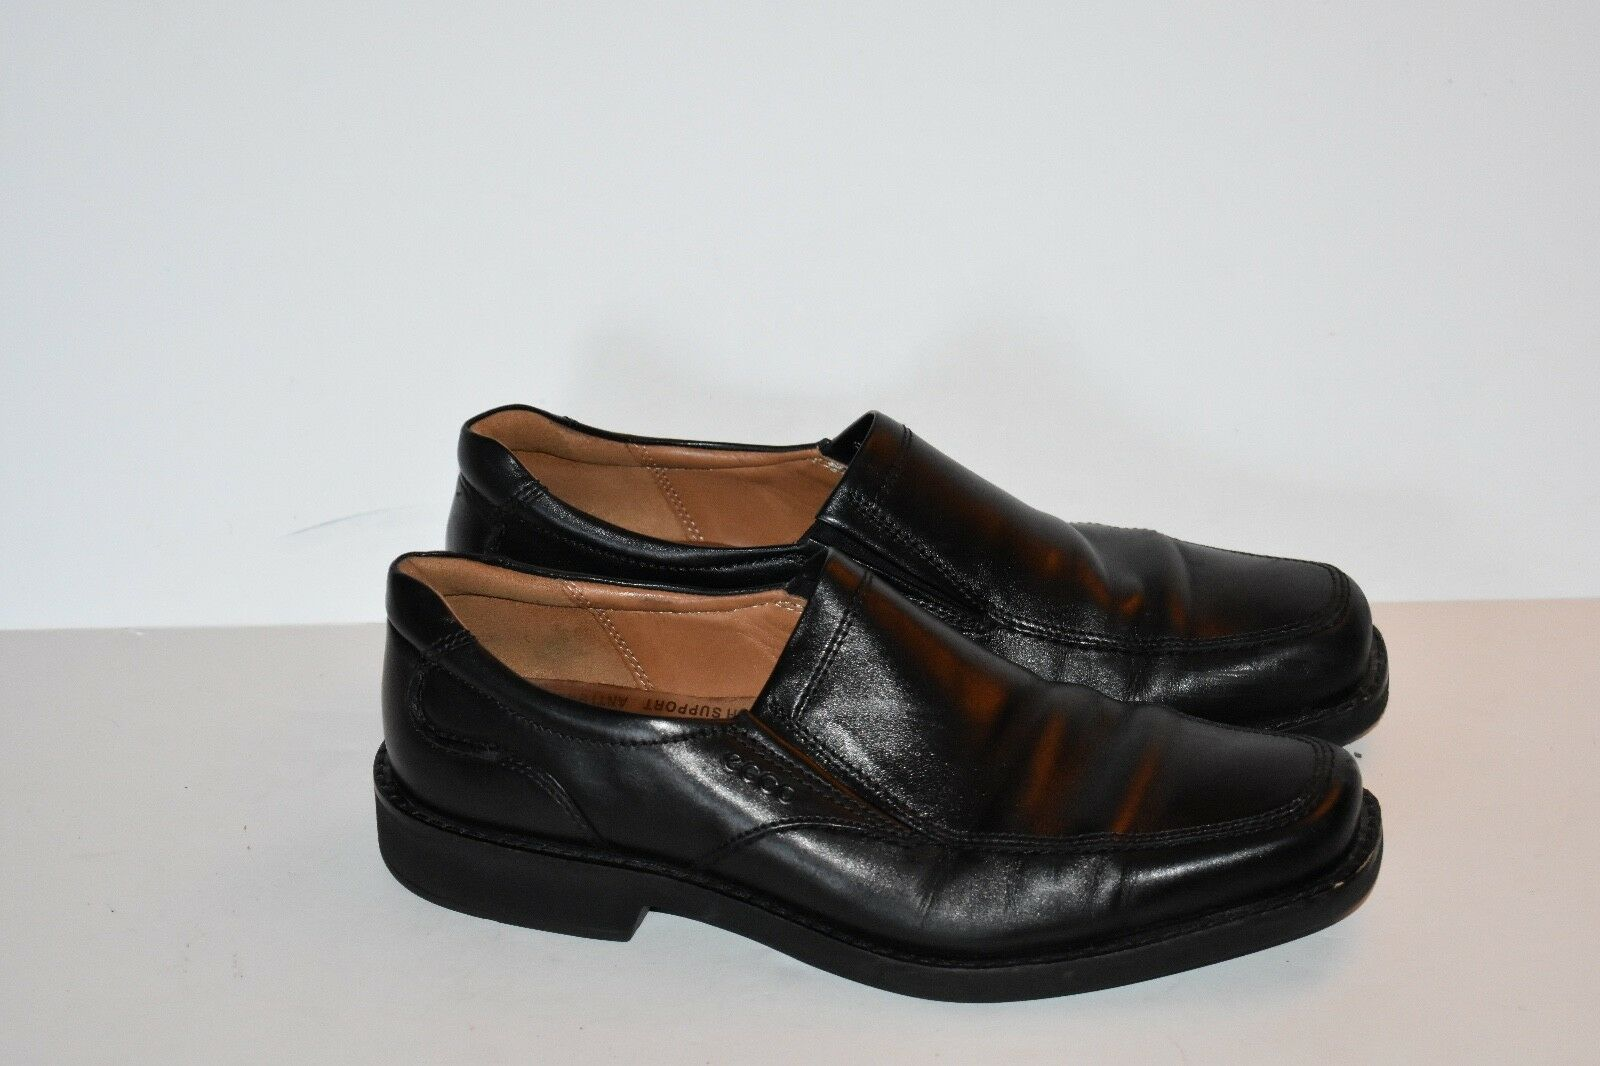 Ecco Black Leather Casual Loafer shoes Men's Size 45 Extra Width